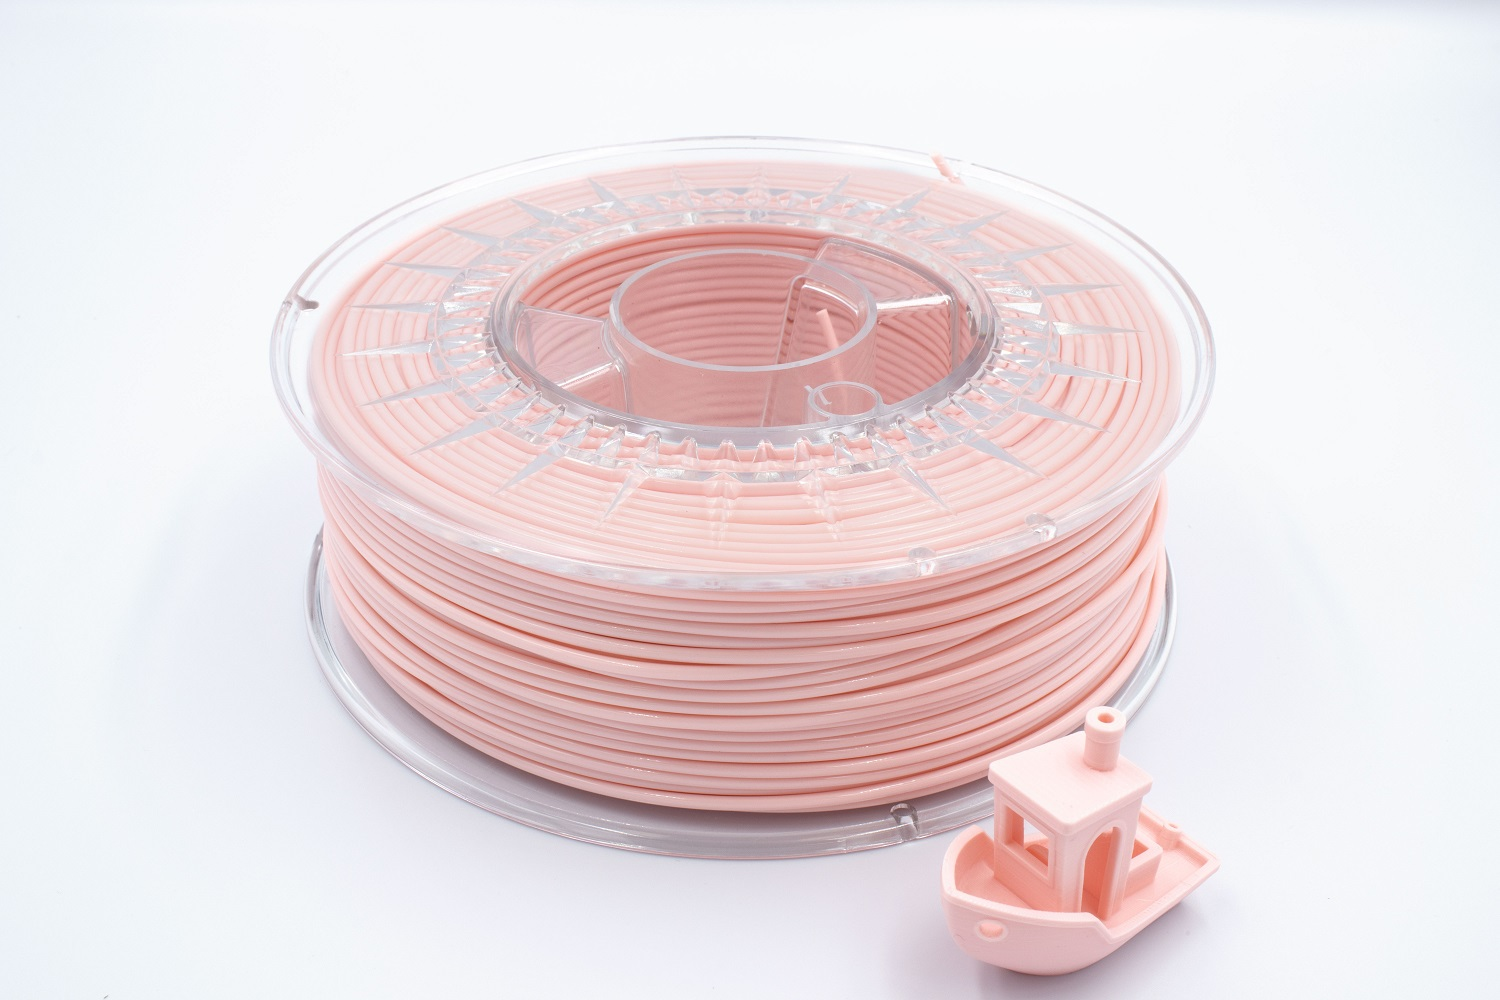 More info on Pretty in Pink Filament